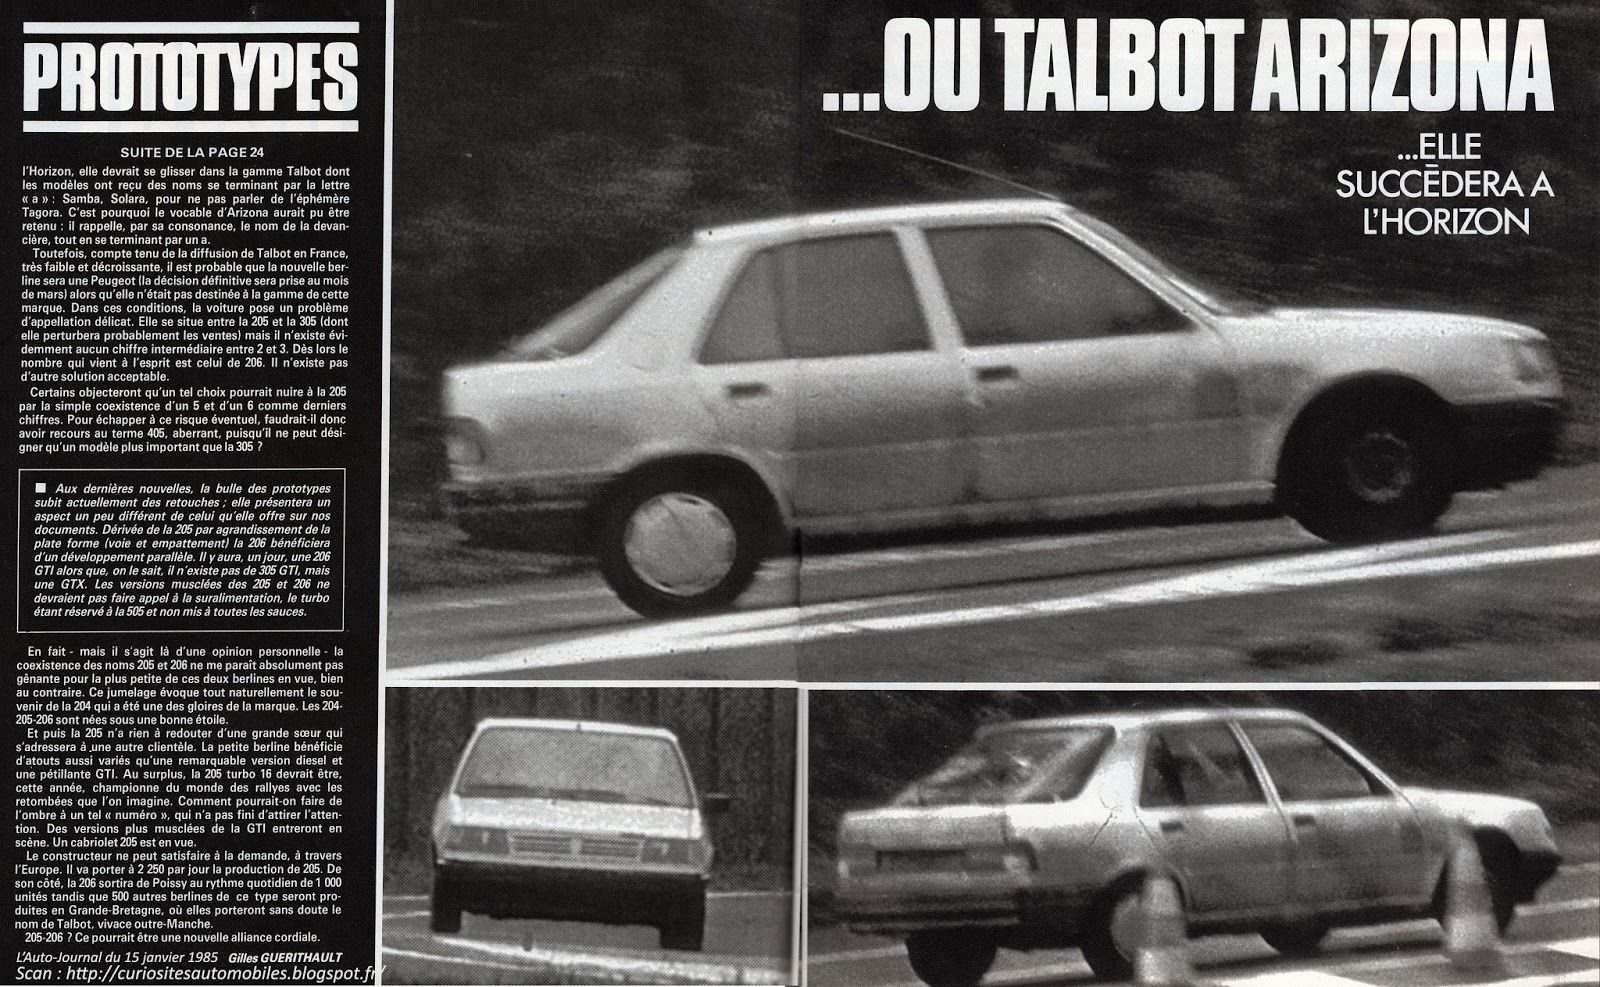 Talbot Arizona - French press article.jpg